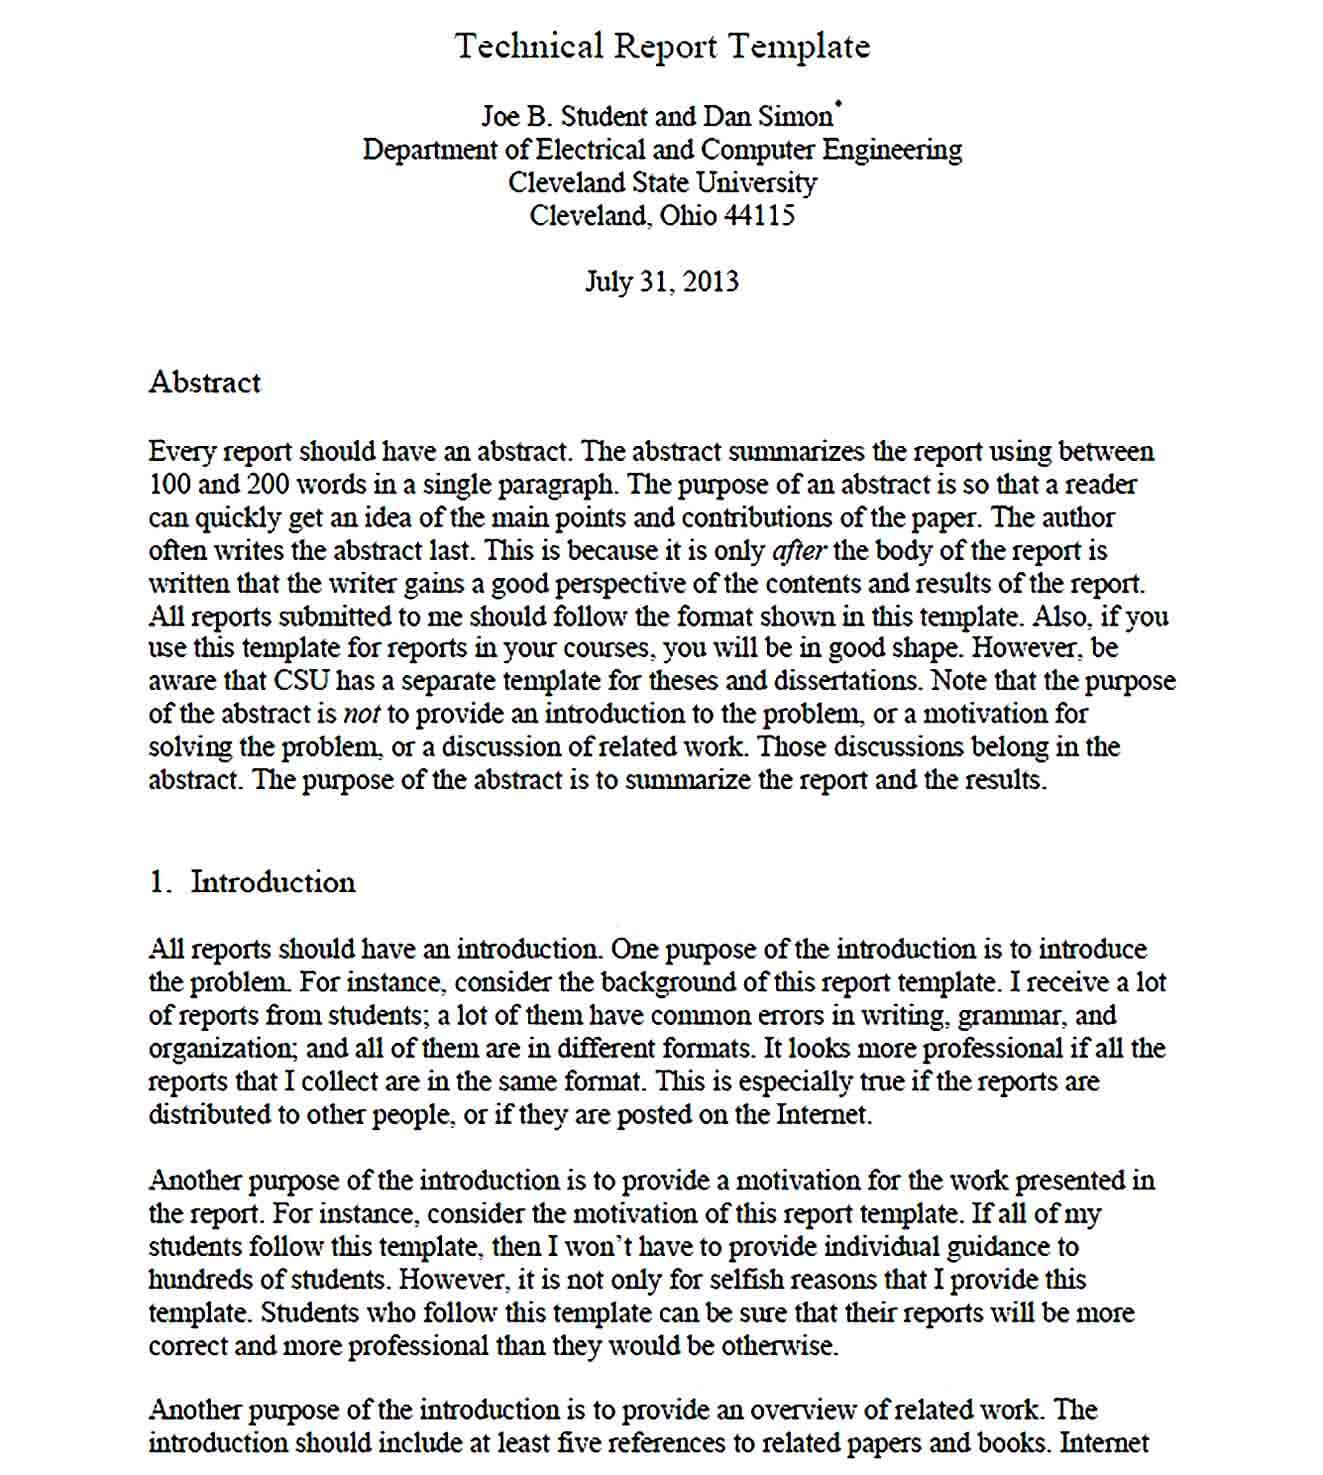 Sample Electrical and Computer Engineering Technical Report Template